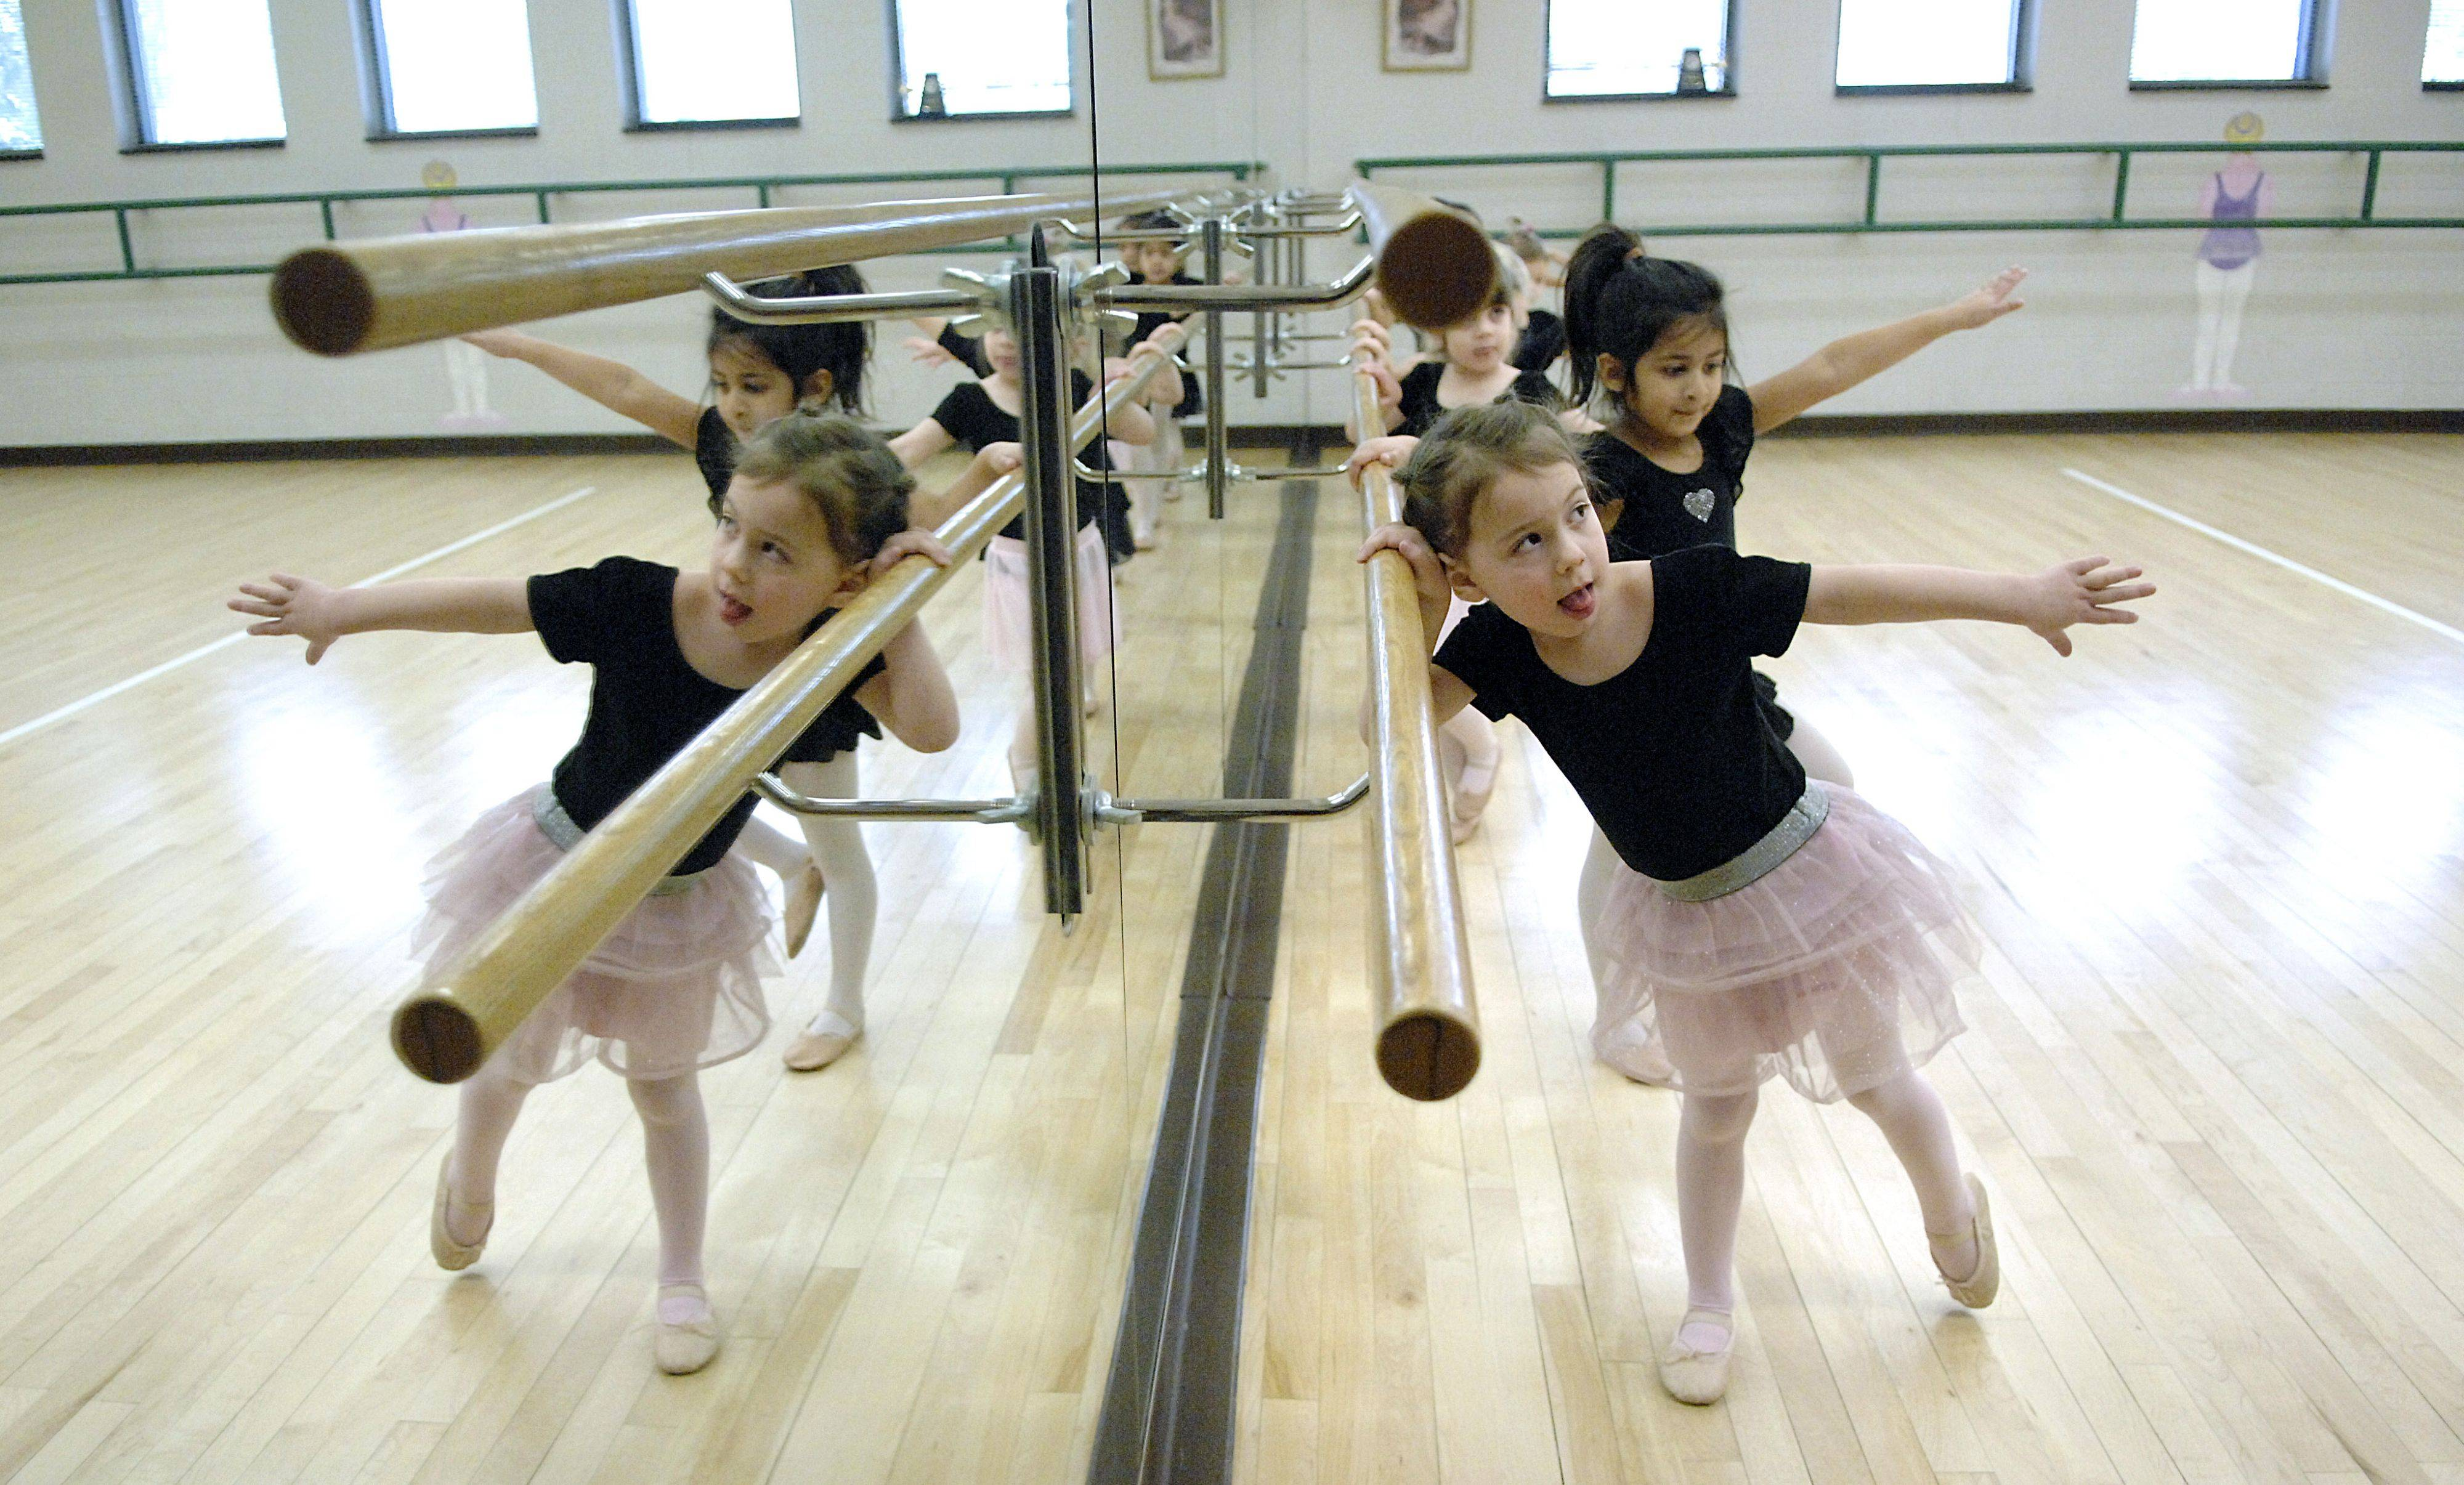 Gabrielle Kozak, 3, of St. Charles practices at the rail with other three and four year olds in the Babes in Ballet class taught by Debbie Studdard at the St. Charles Park District's Pottawatomie Community Center on Thursday, January 13. This is Gabrielle's first ballet class. Babes in Ballet is offered to age groups starting at age three and up to six, and several classes are offered during the week.